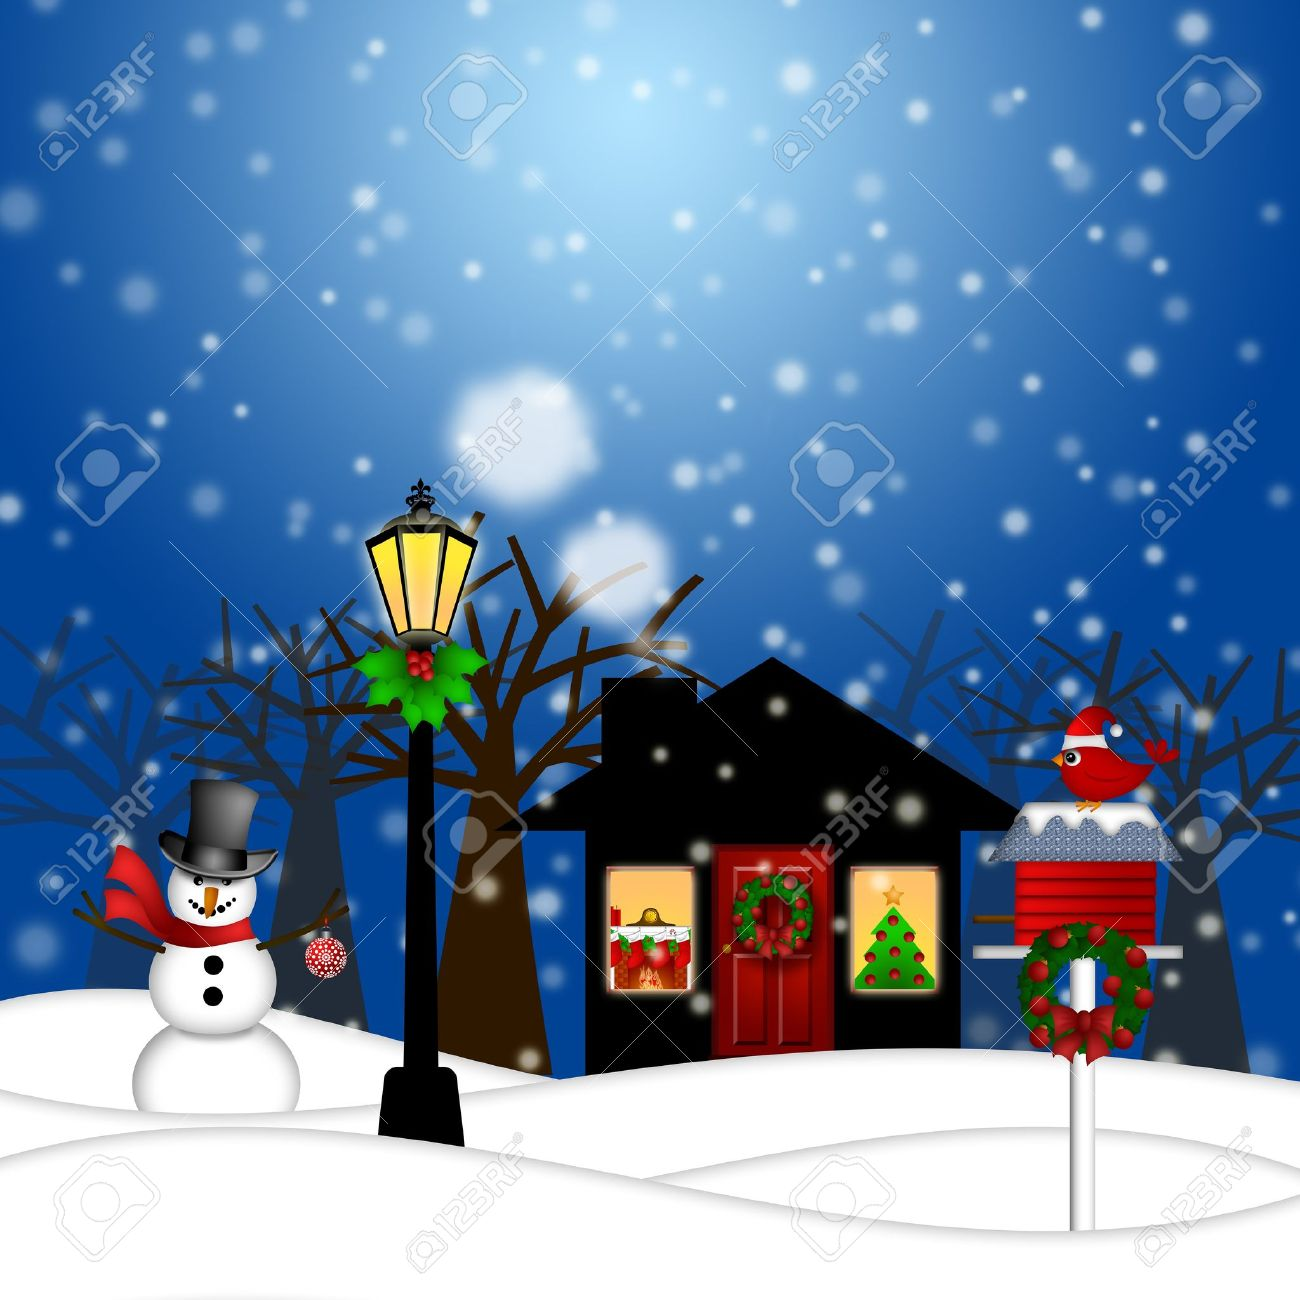 House with Lamp Post Snowman and Birdhouse Christmas Decoration in Snowing Winter Scene Landscape Illustration Stock Illustration - 11585742